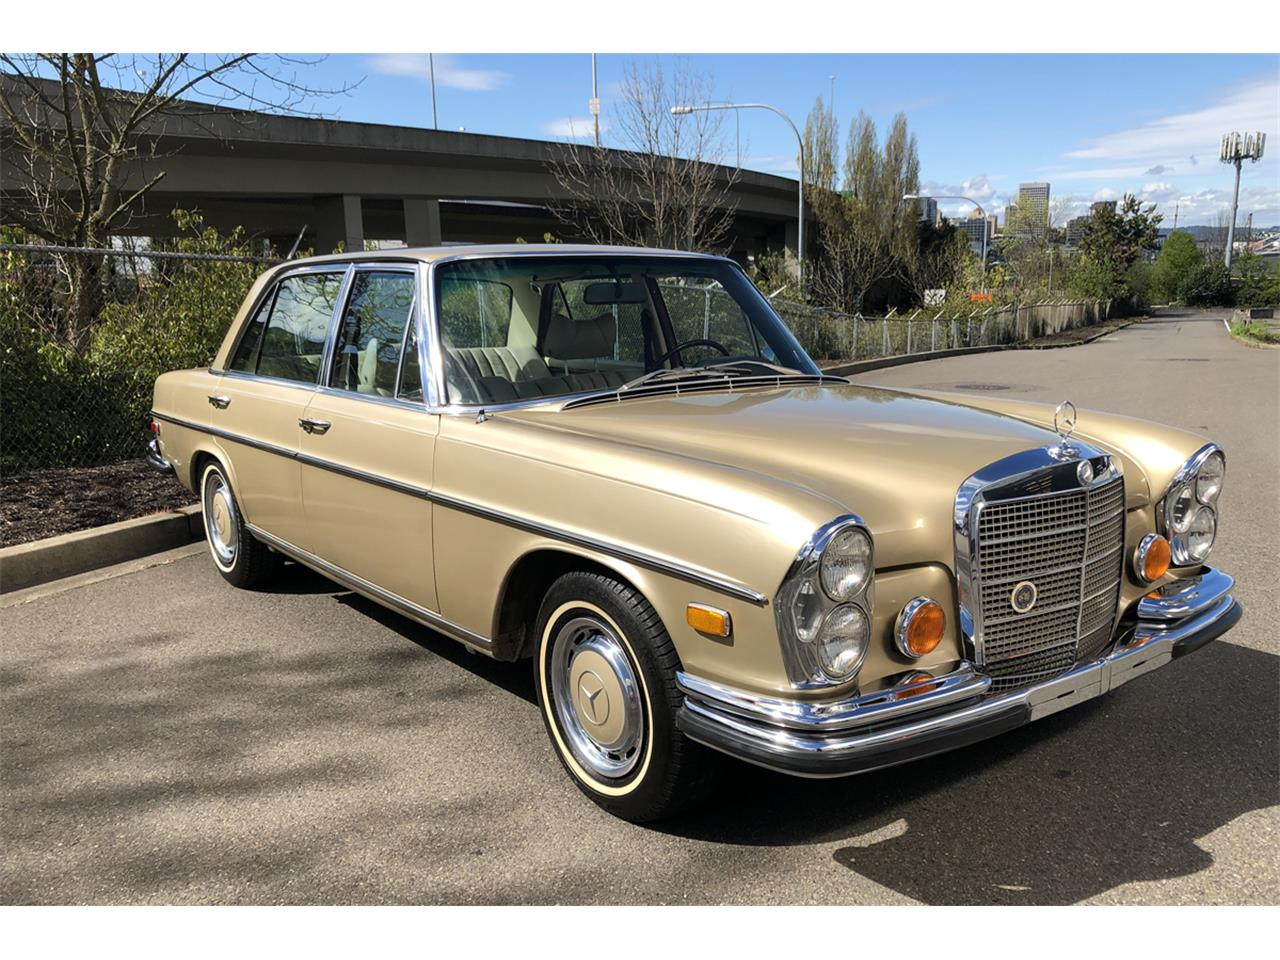 Large Picture of '72 Mercedes-Benz 300SEL located in Tacoma Washington Auction Vehicle Offered by Lucky Collector Car Auctions - PZTV